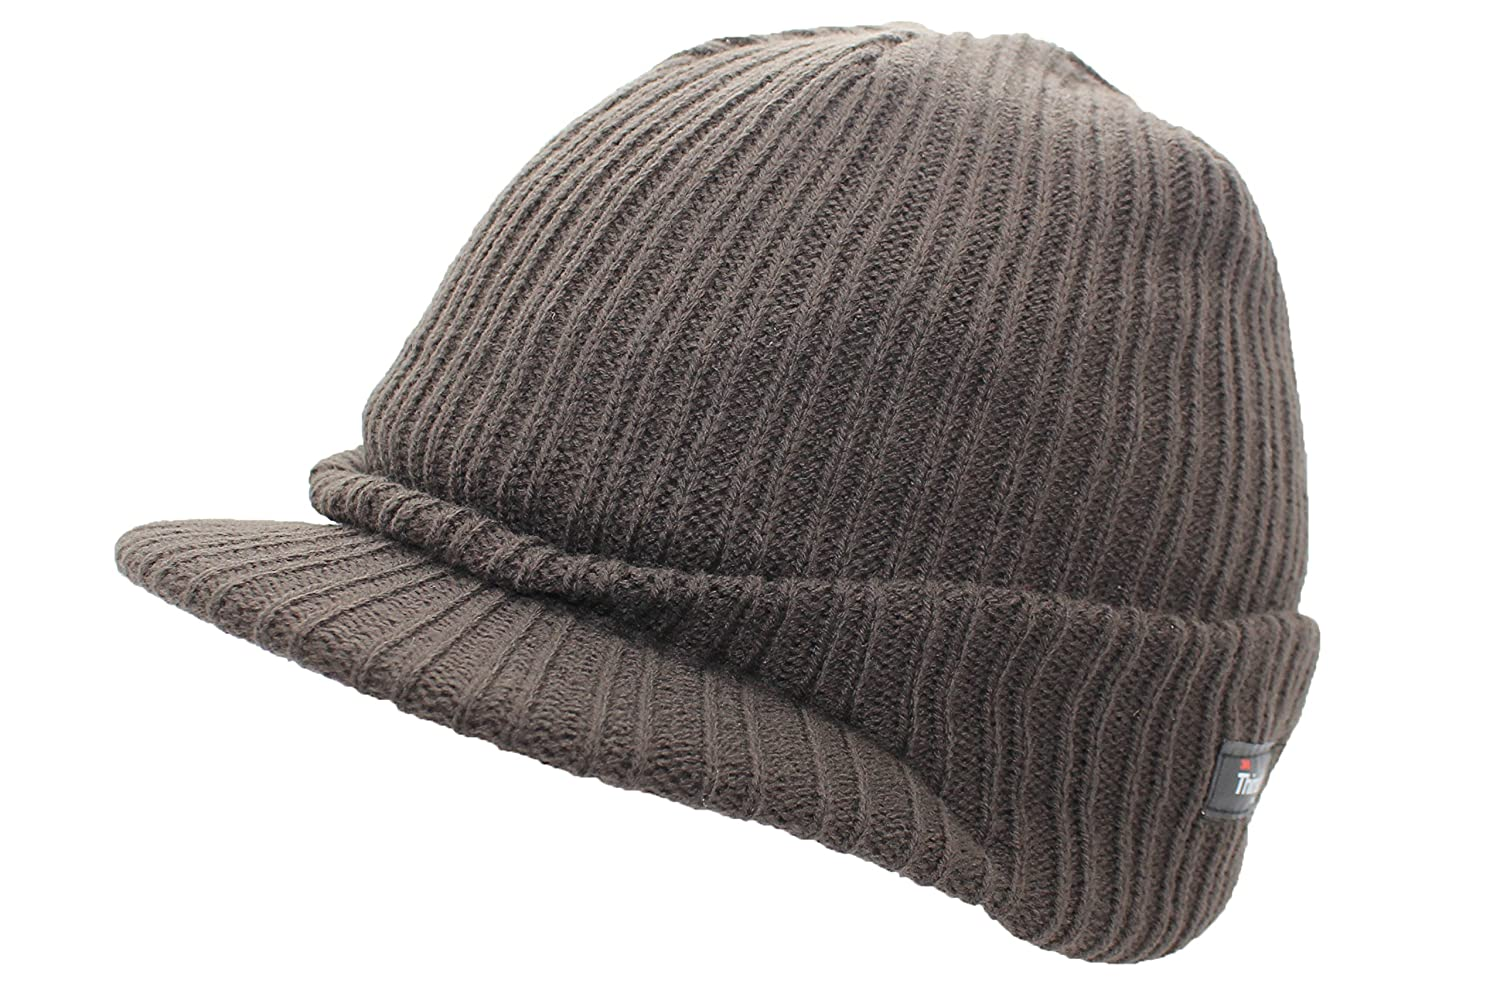 Mens Peak Beanie Hat in Black with Thinsulate Insulation 3-600-04